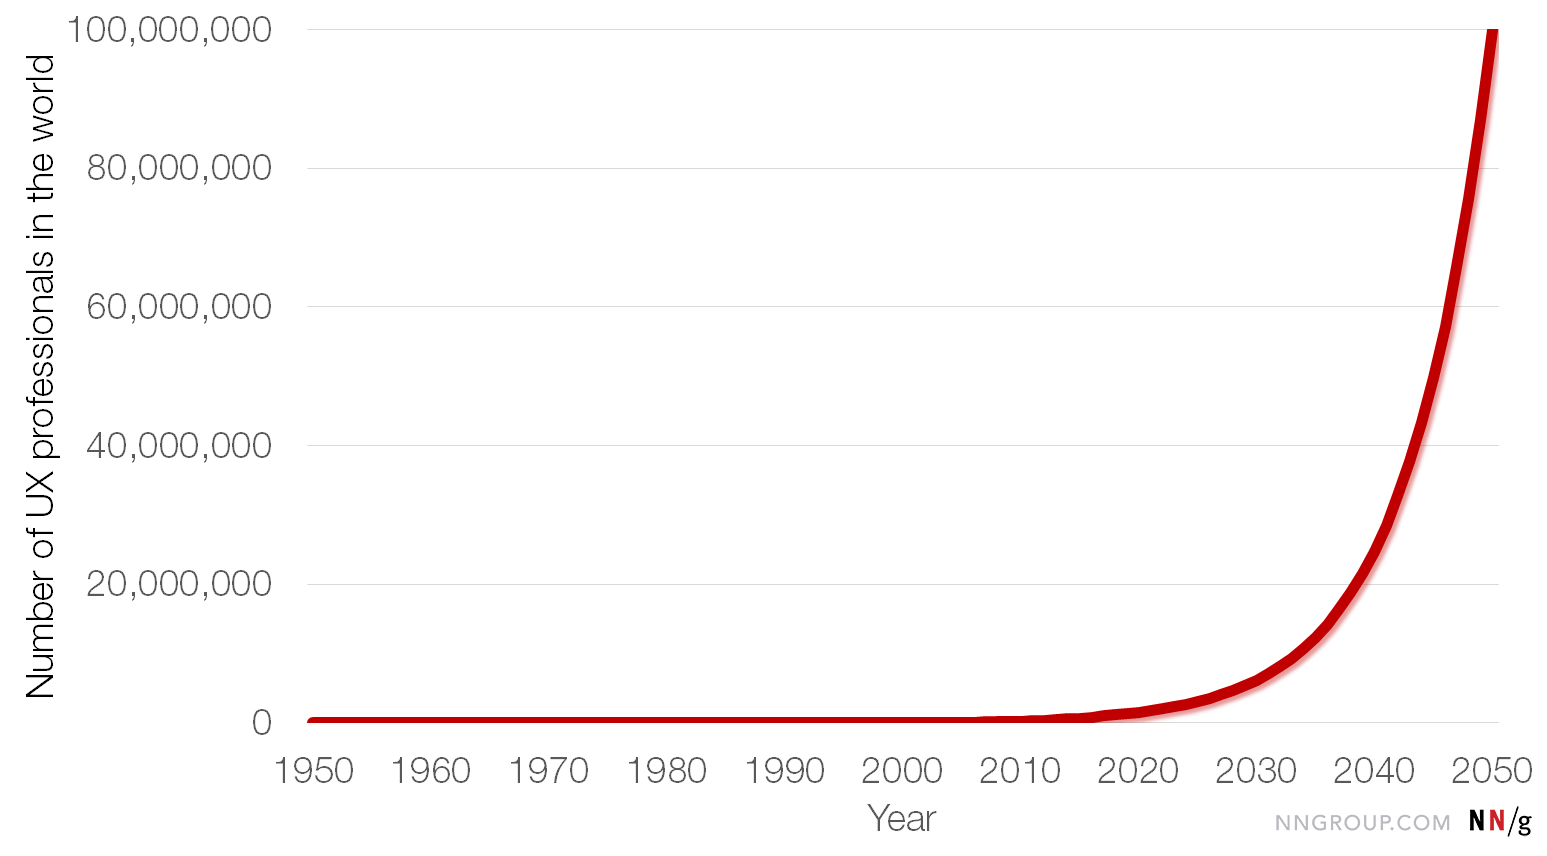 number of ux professionals over time